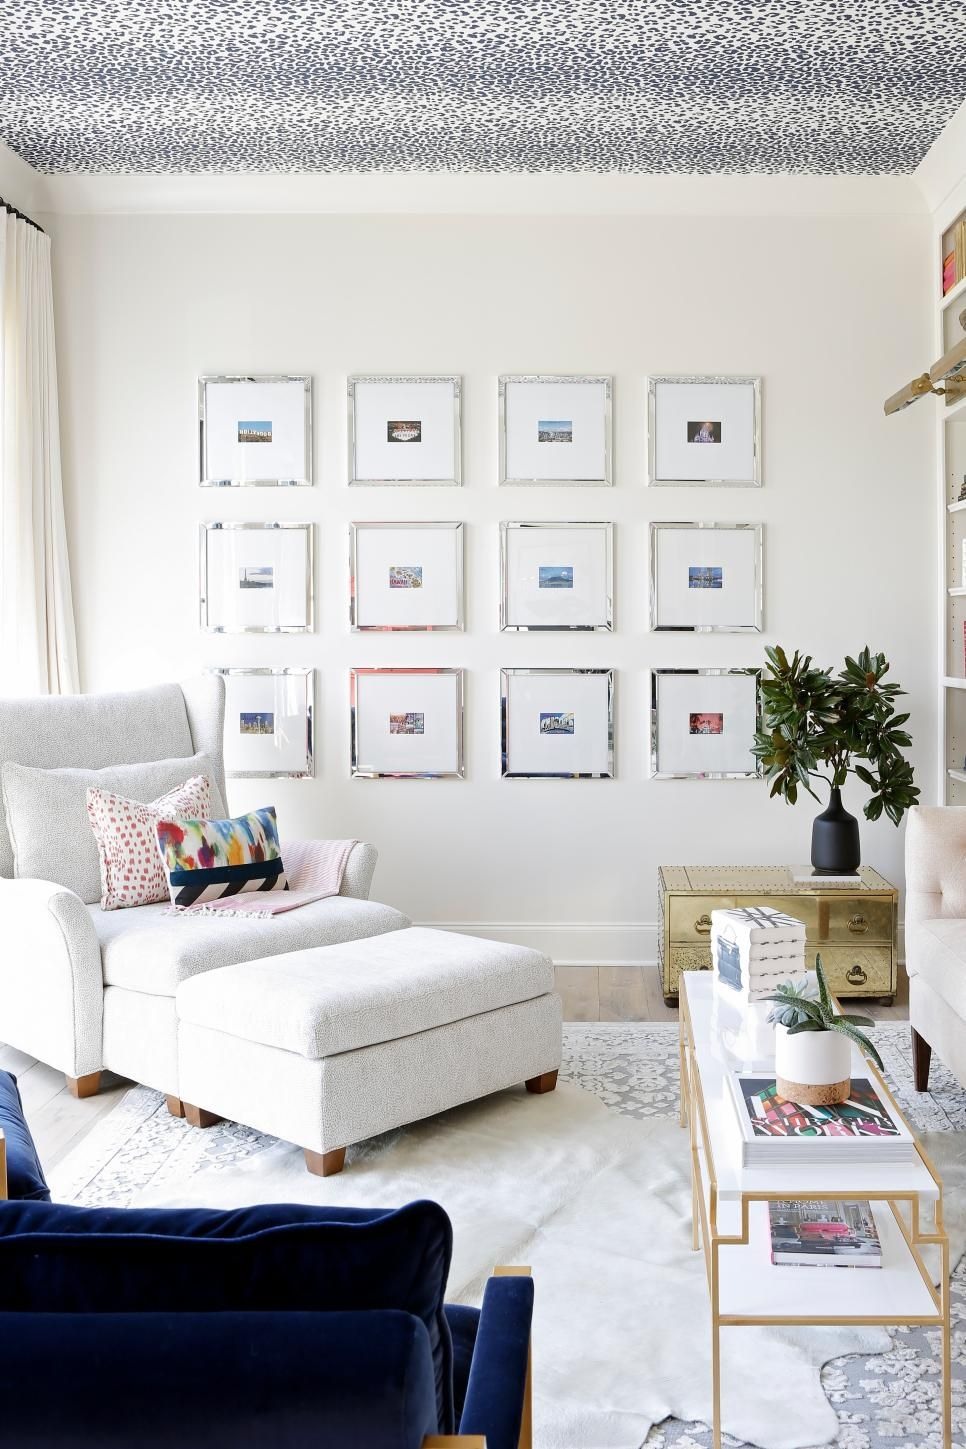 Rooms Viewer Rooms and Spaces Design